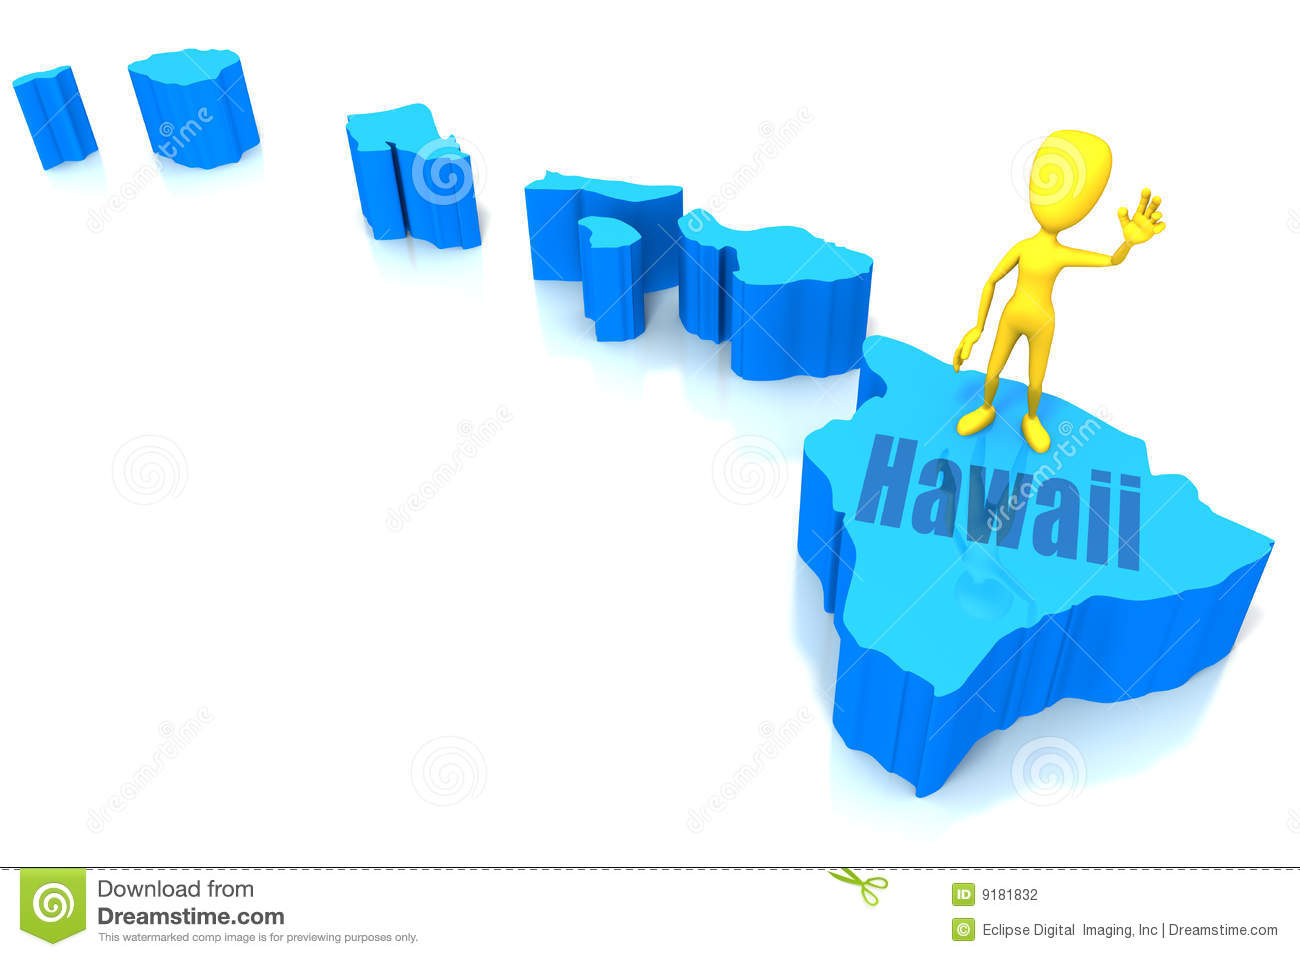 Hawaii State Outline With Yellow Stick Figure